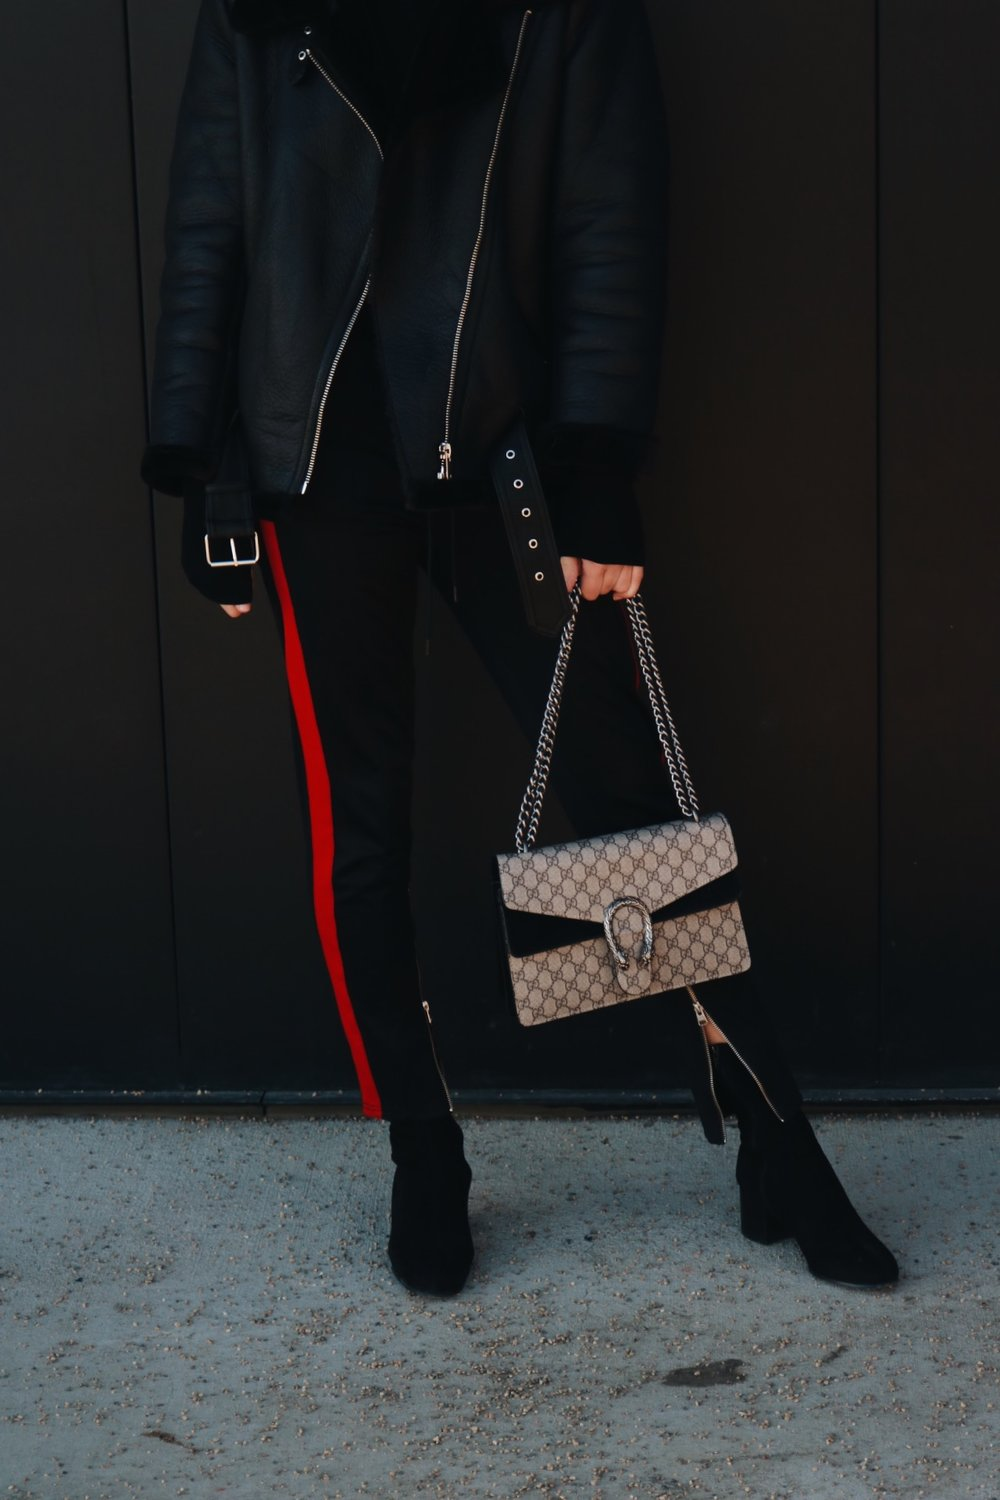 zara biker jacket leather street style rayban red stripe aritzia TNA steve madden sock boot gucci dionysus saskatoon saskatchewan blogger youtuber cute outfits canadian winter